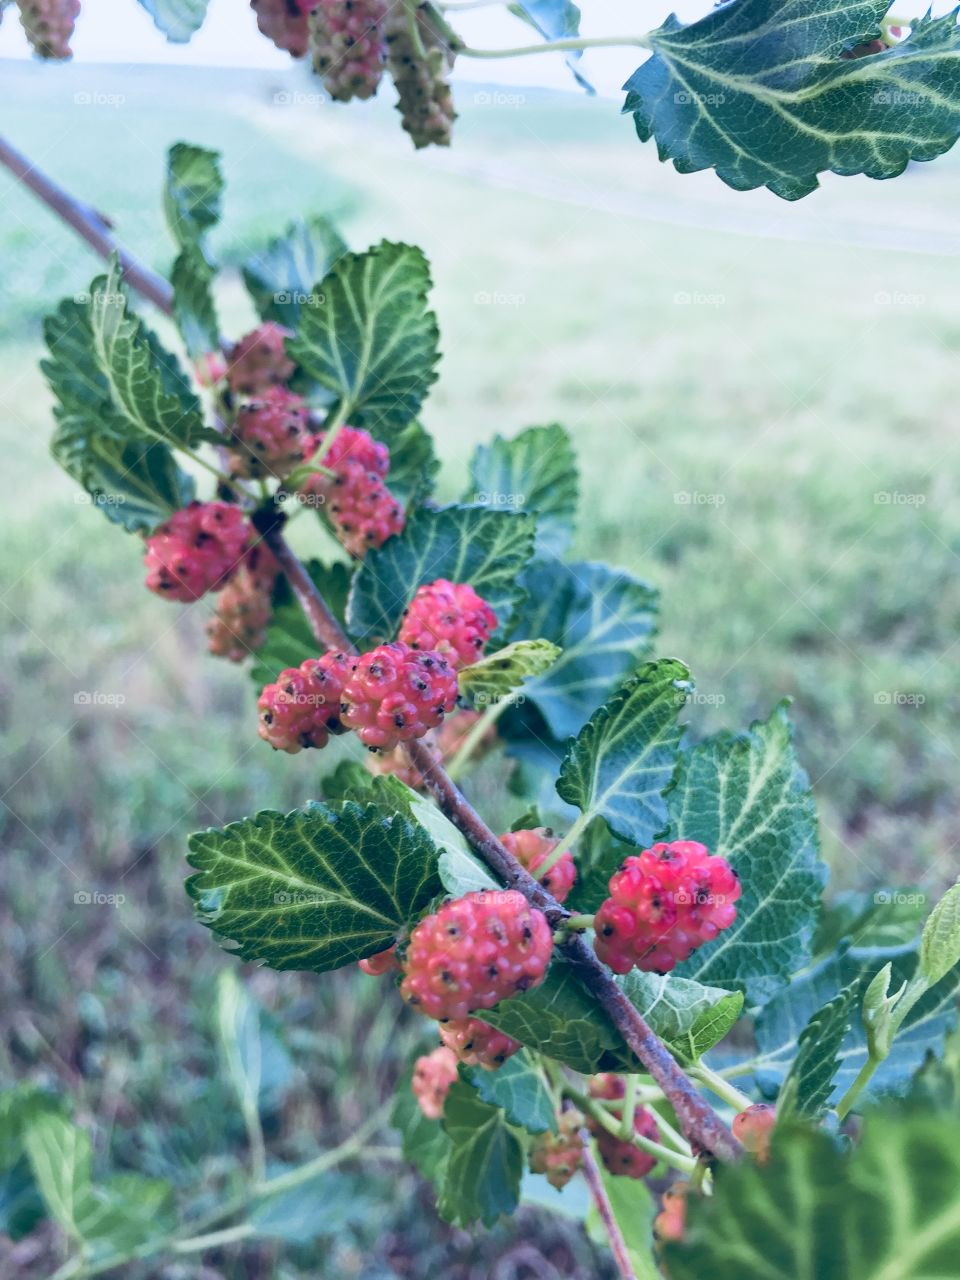 Closeup of bright pink mulberries ripening on a branch, with a blurred view of a rural background